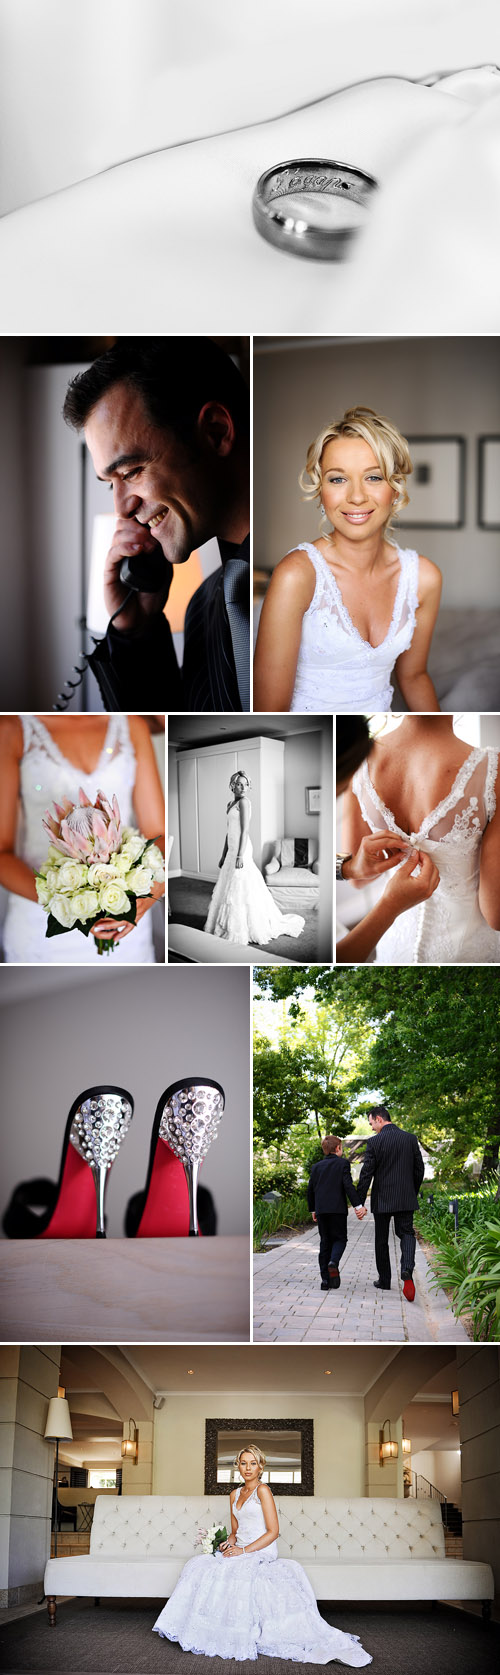 glamorous south african real wedding, black, white, gray and silver wedding color palette, images by Eric Uys